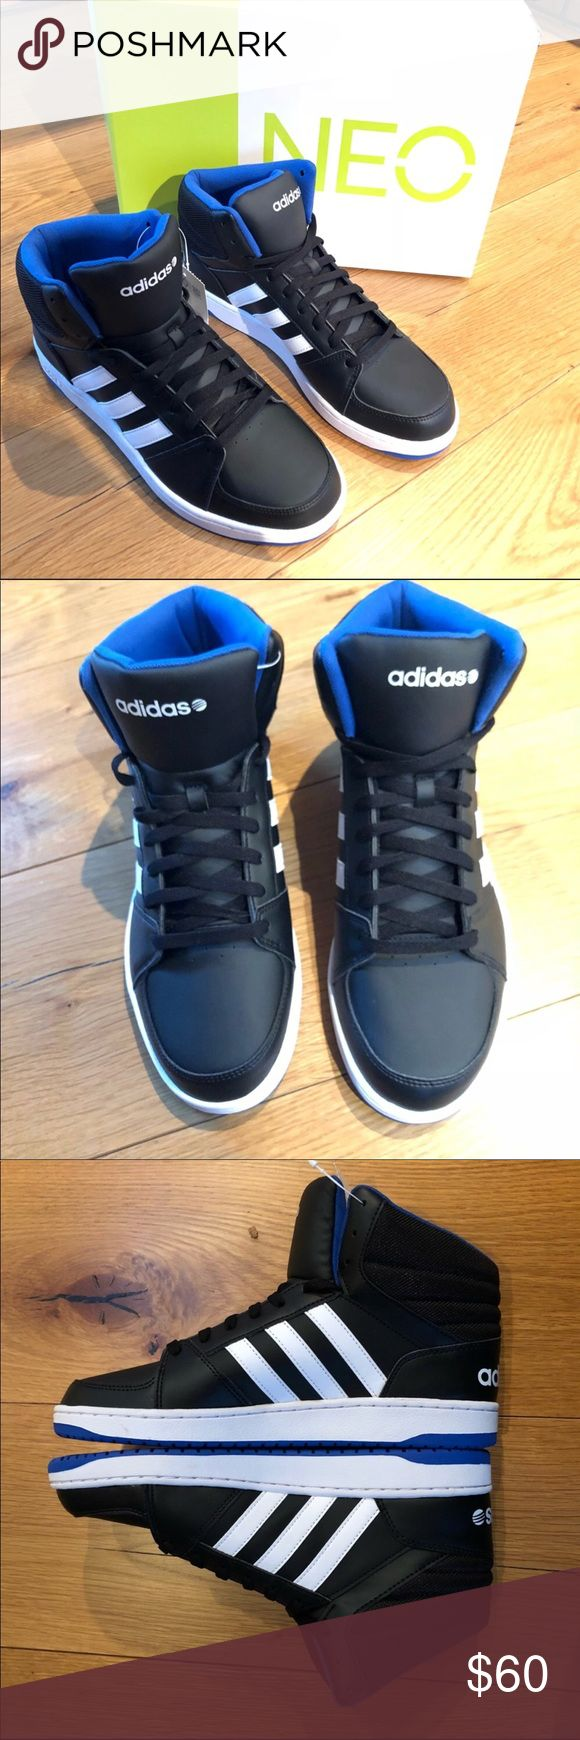 Men's Adidas Neo Hoops vs Mid black blue white NEW New in box Adidas Neo for Men   Features Textile/Synthetic Imported Rubber sole Synthetic leather upper Padded textile collar Woven adidas wordmark tongue label adidas wordmark on heel Thick rubber outsol